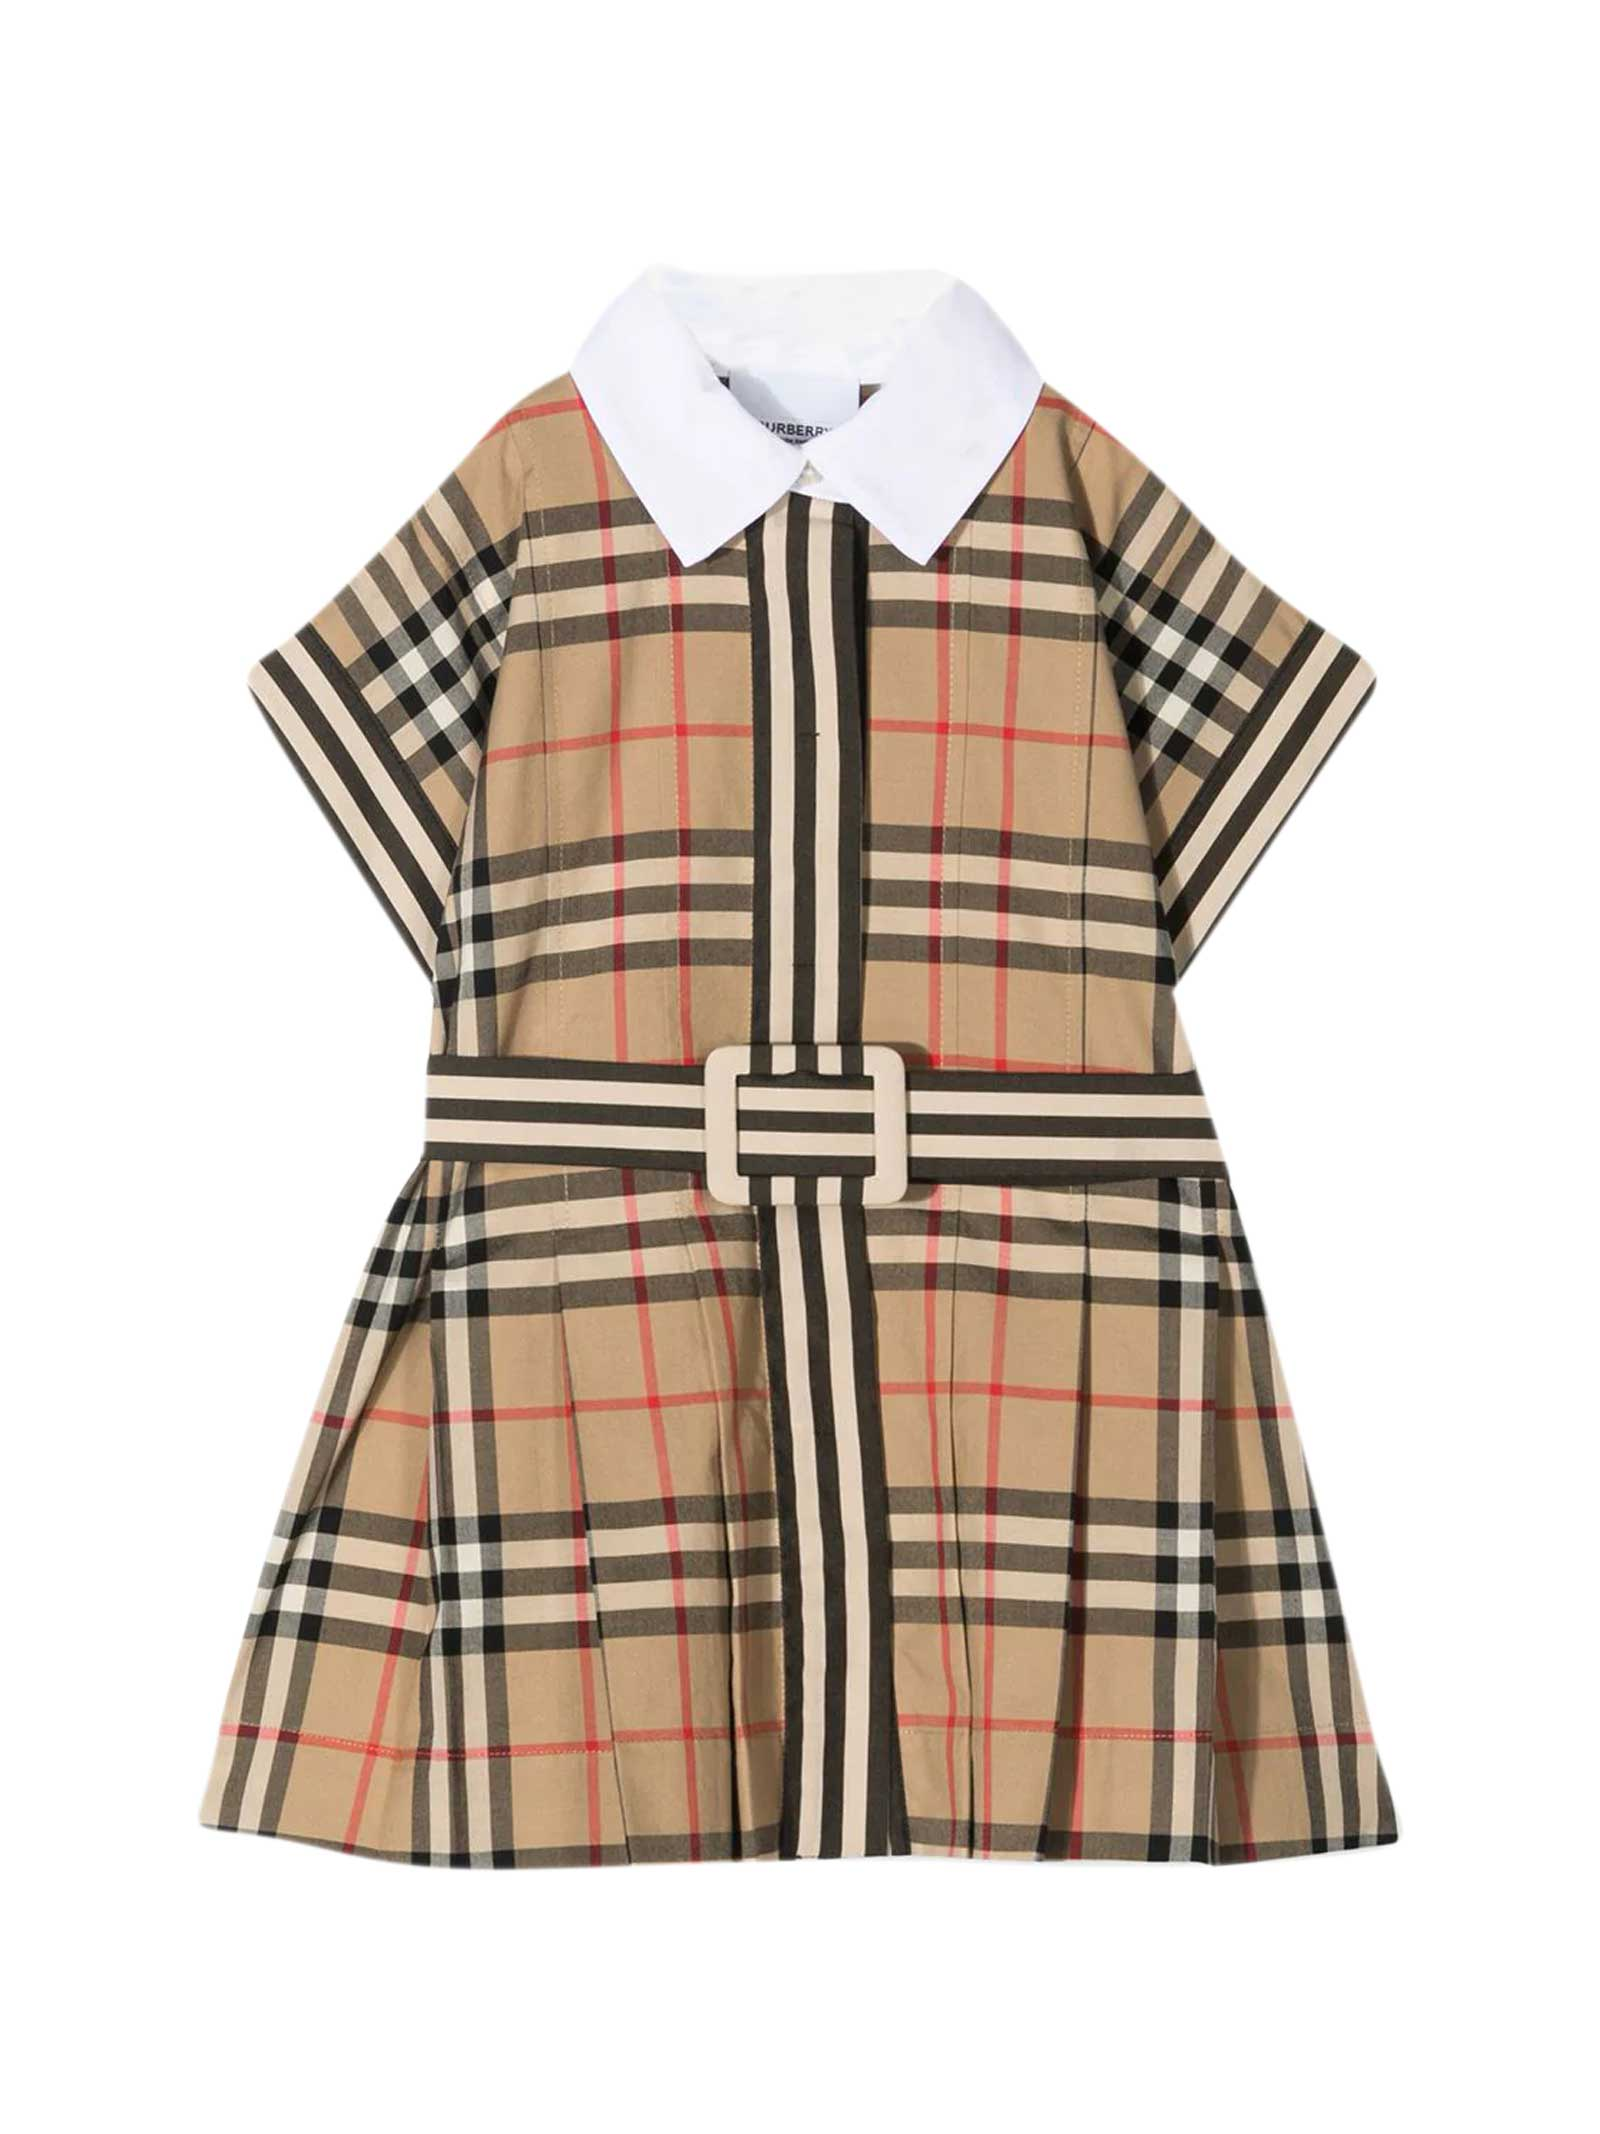 Burberry Babies' Vintage Check Dress In Beige